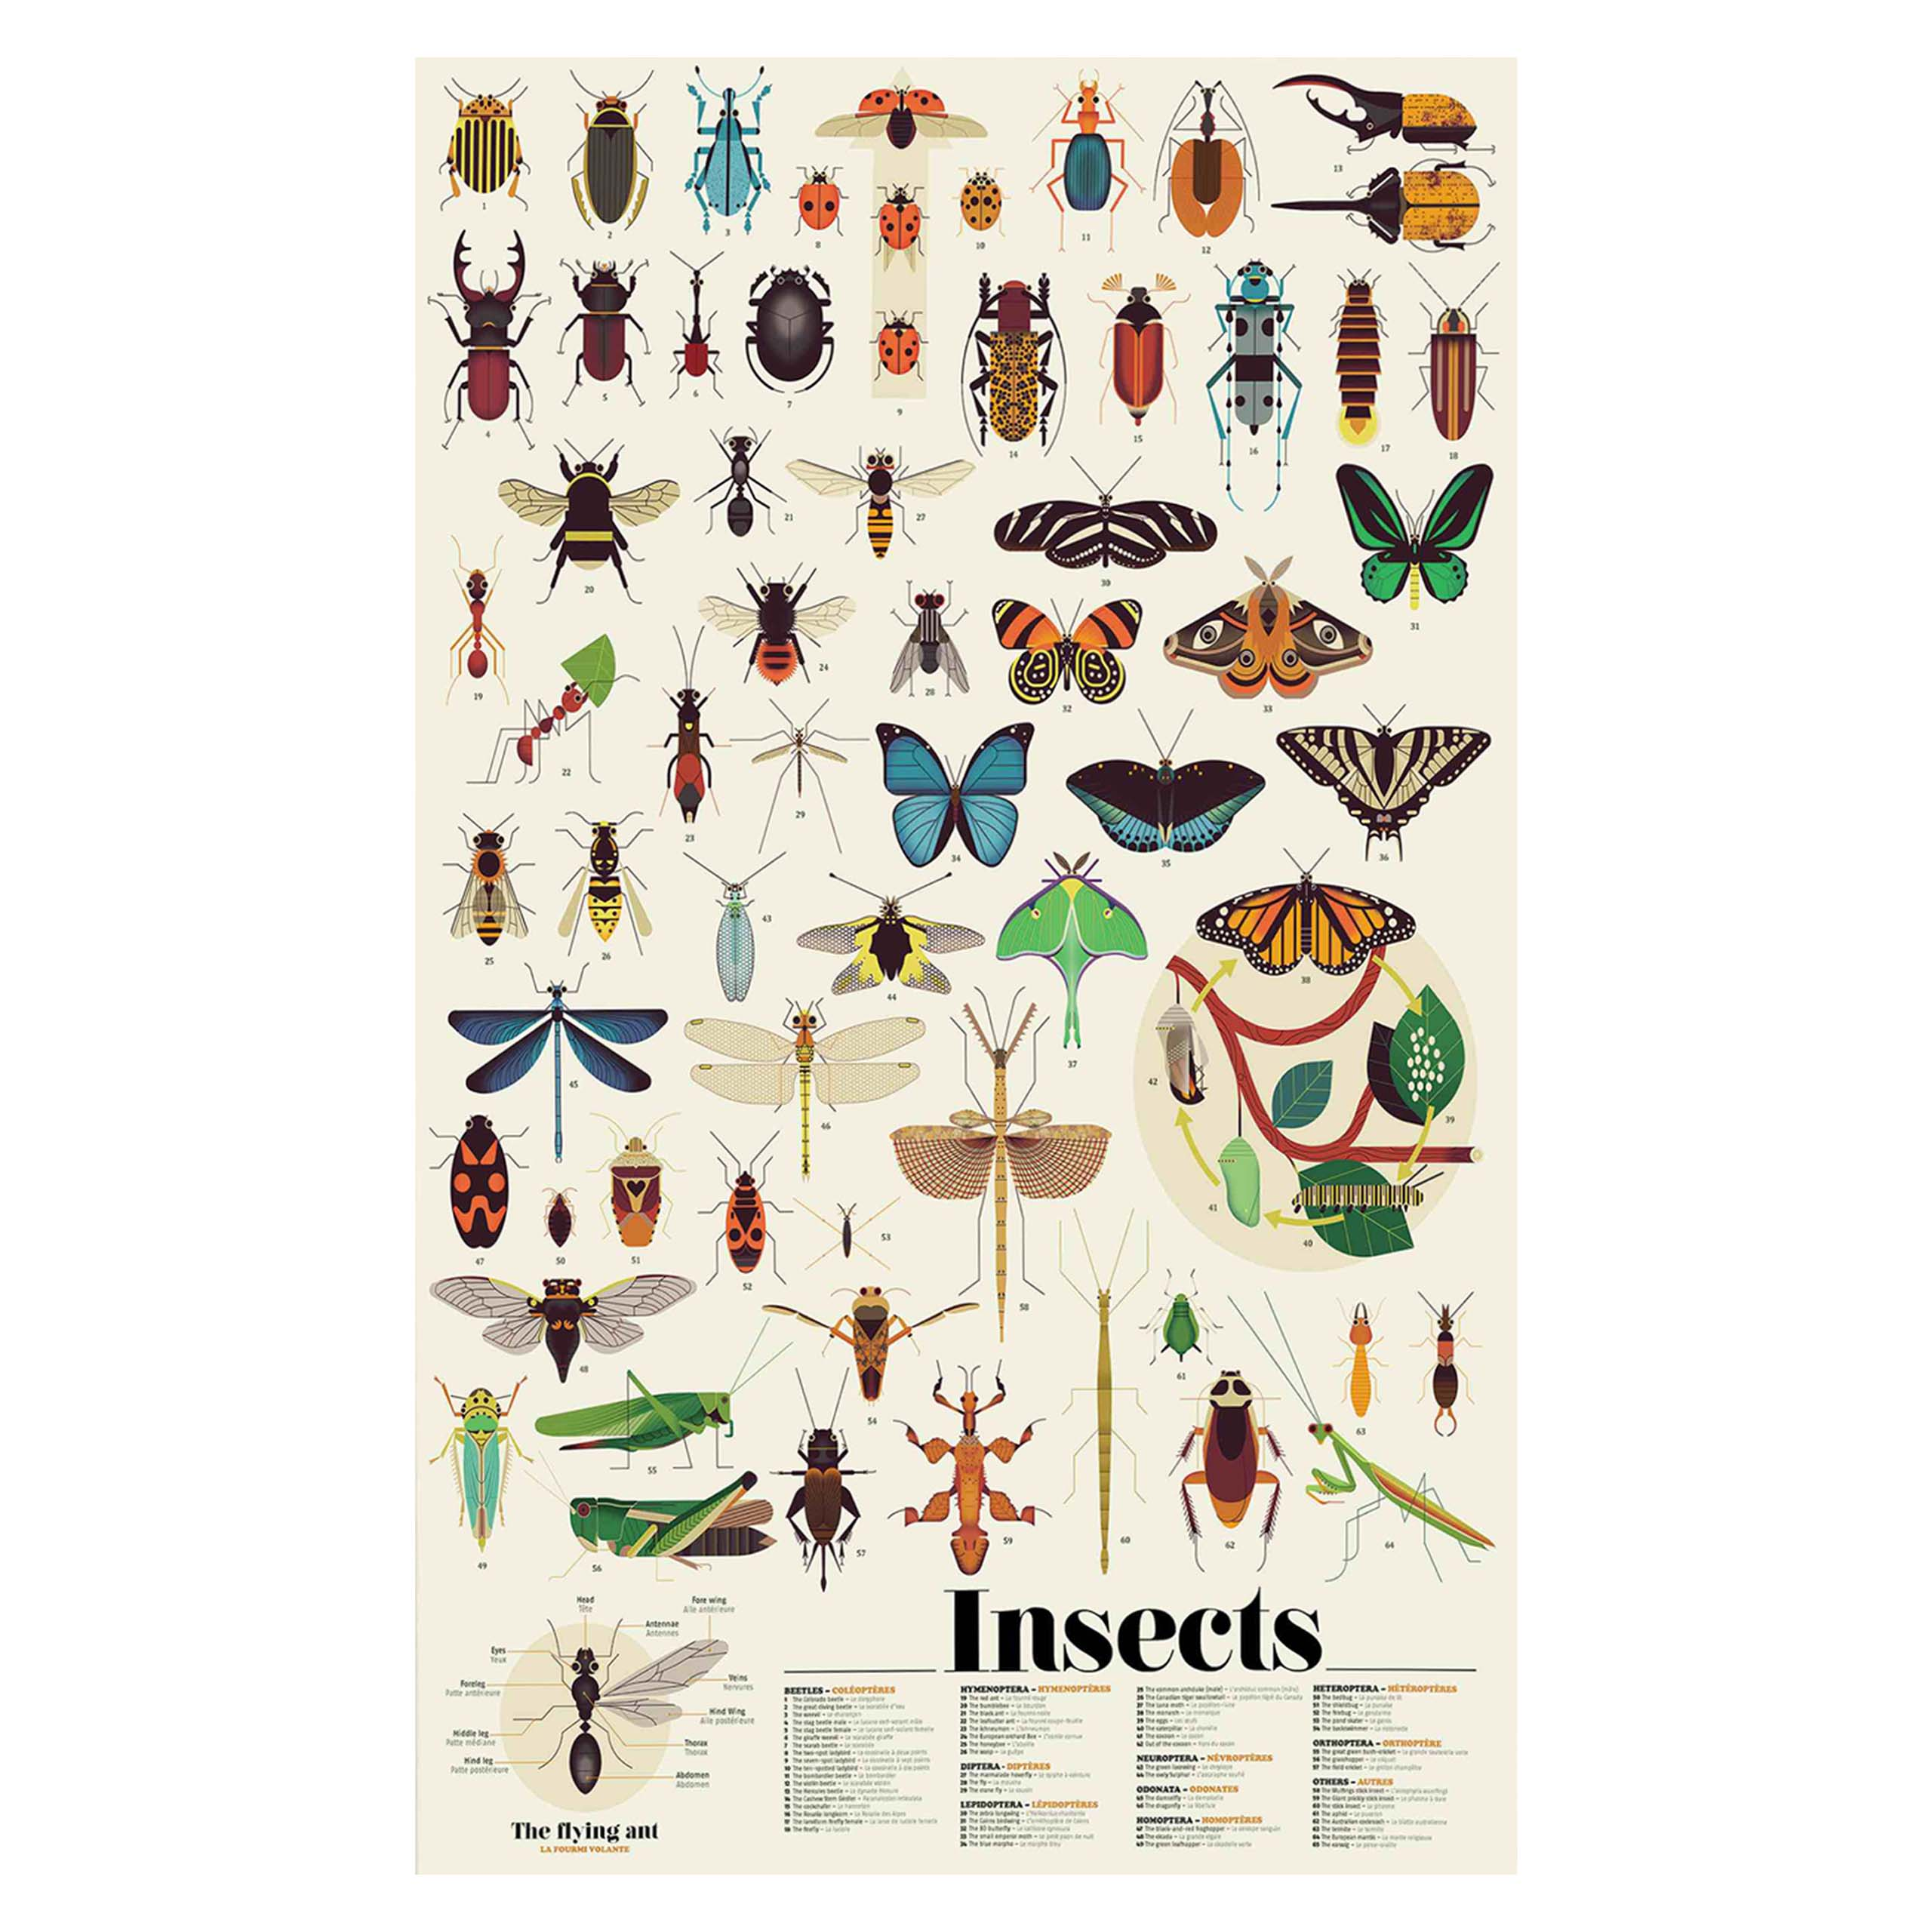 Insects Sticker Craft Set, Wall Poster